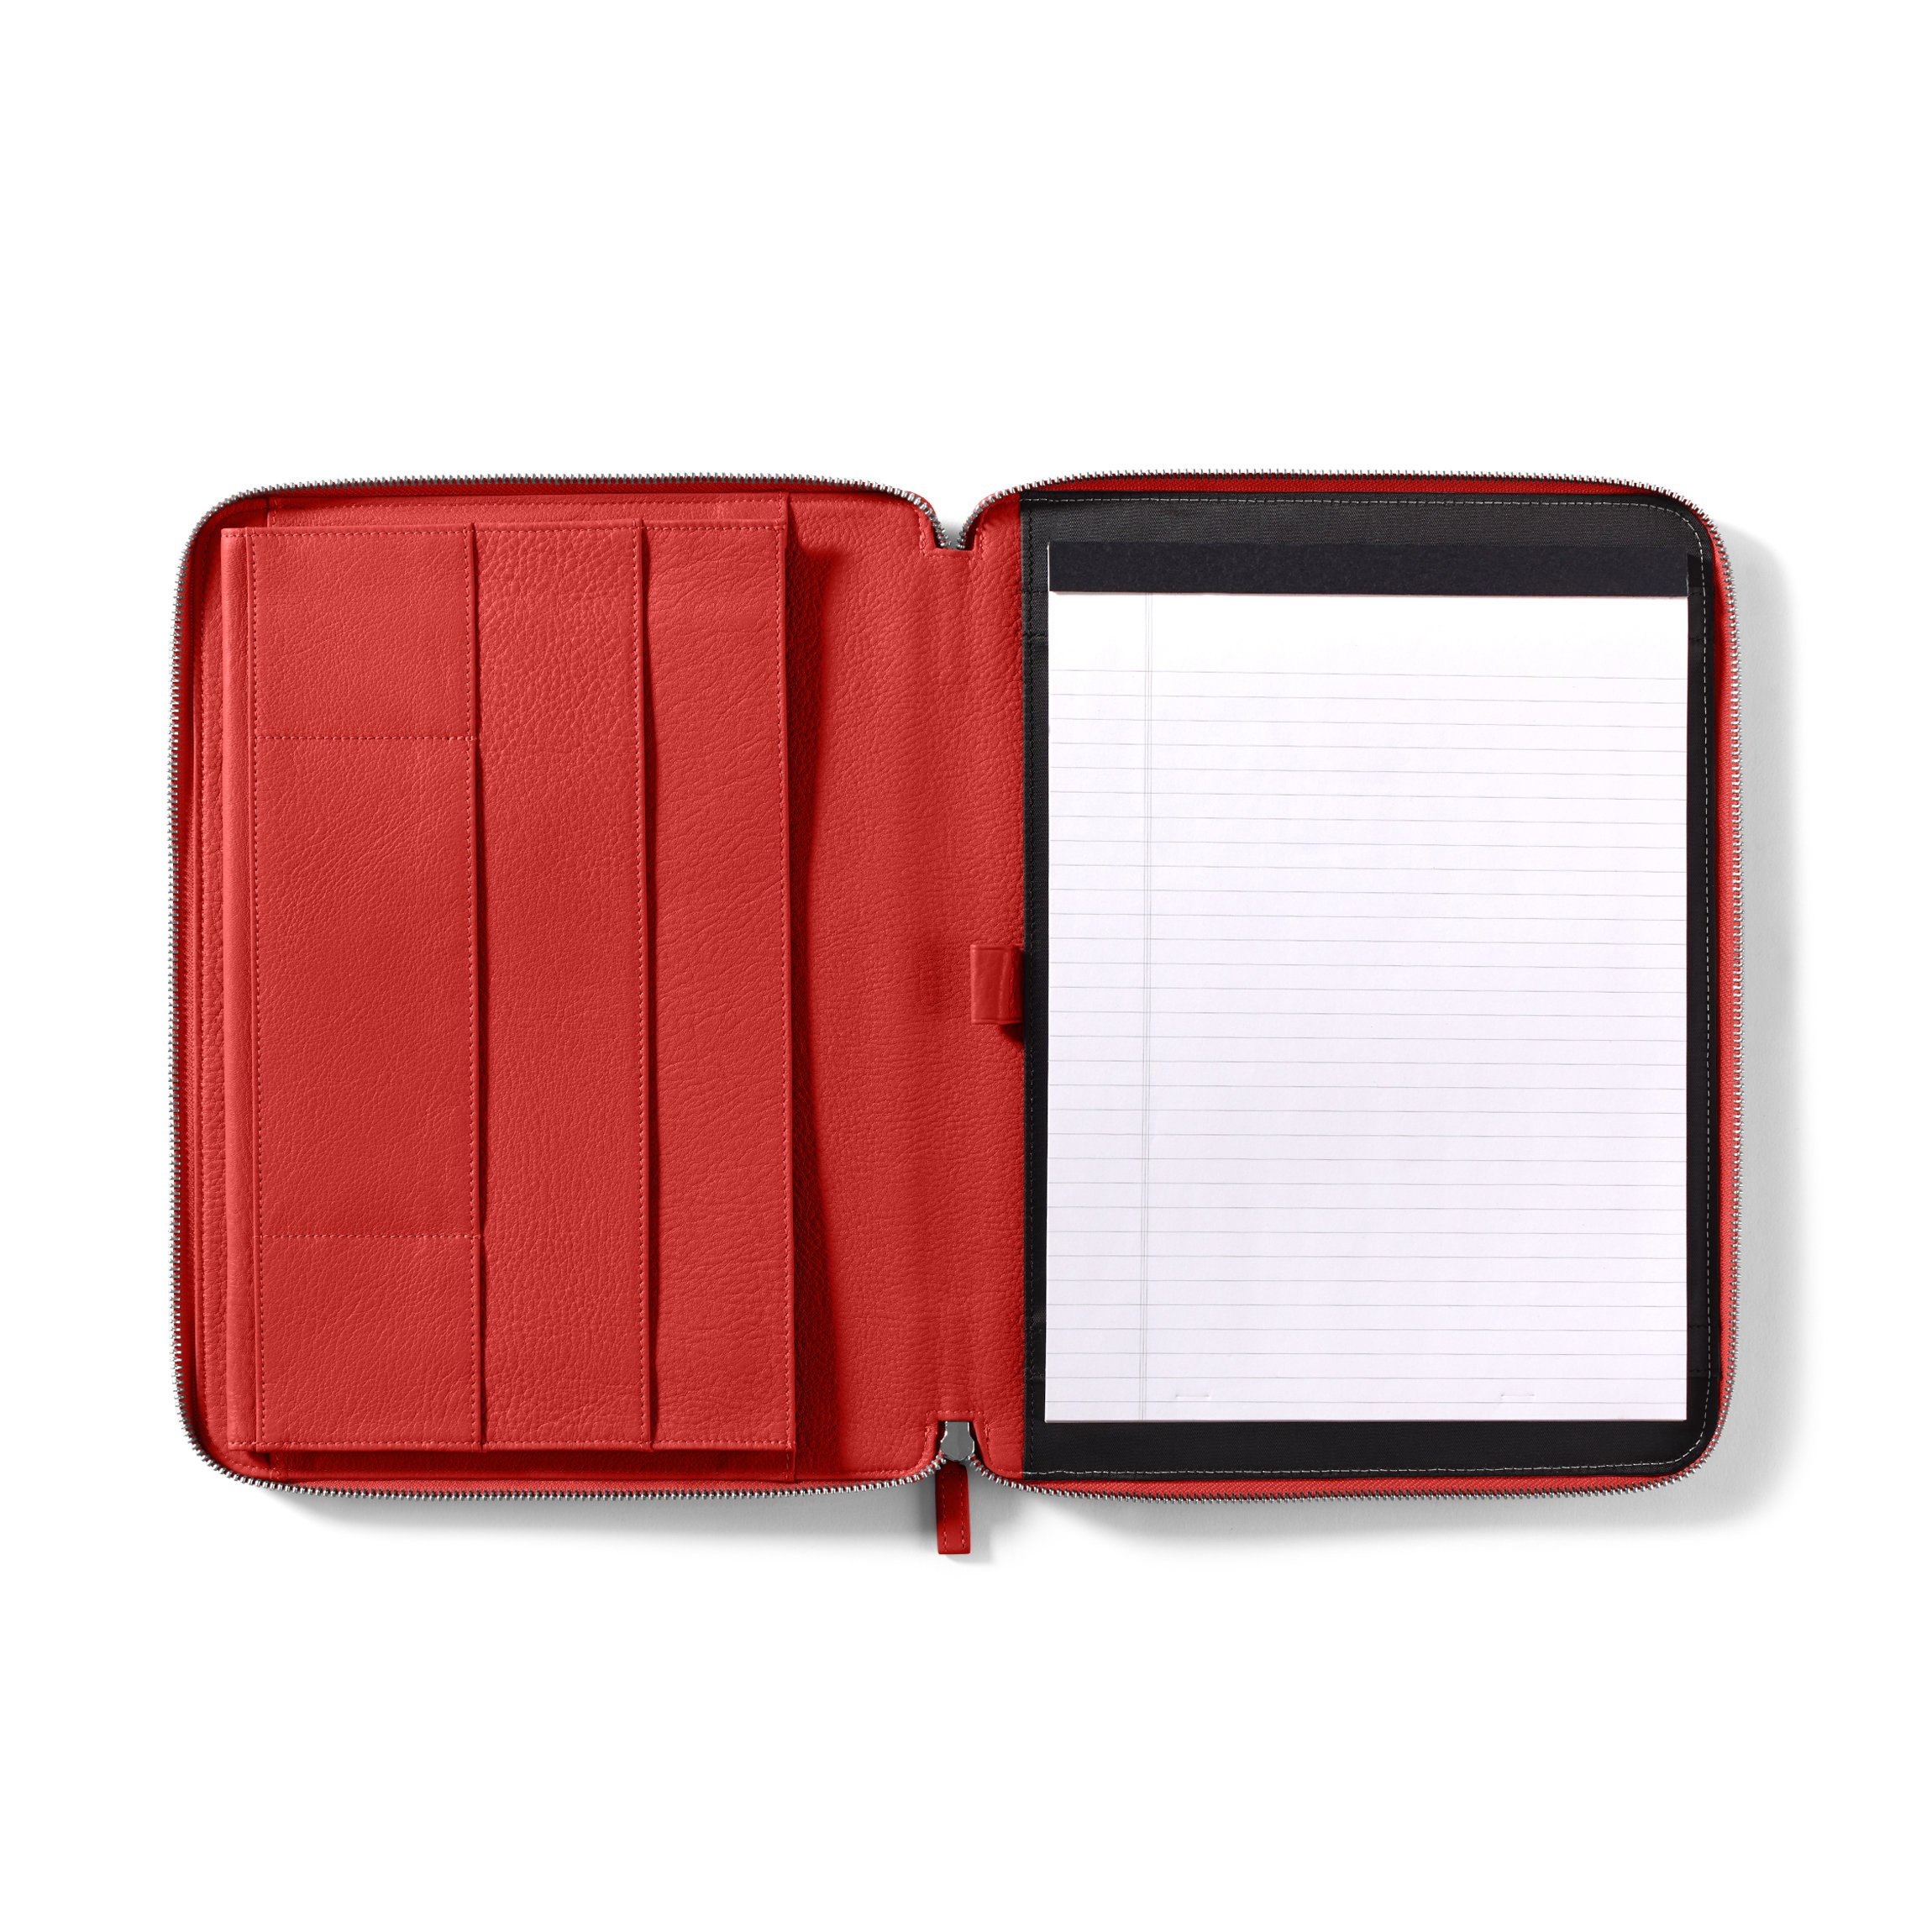 ipad portfolio - Full Grain Leather Leather - Scarlet (red)